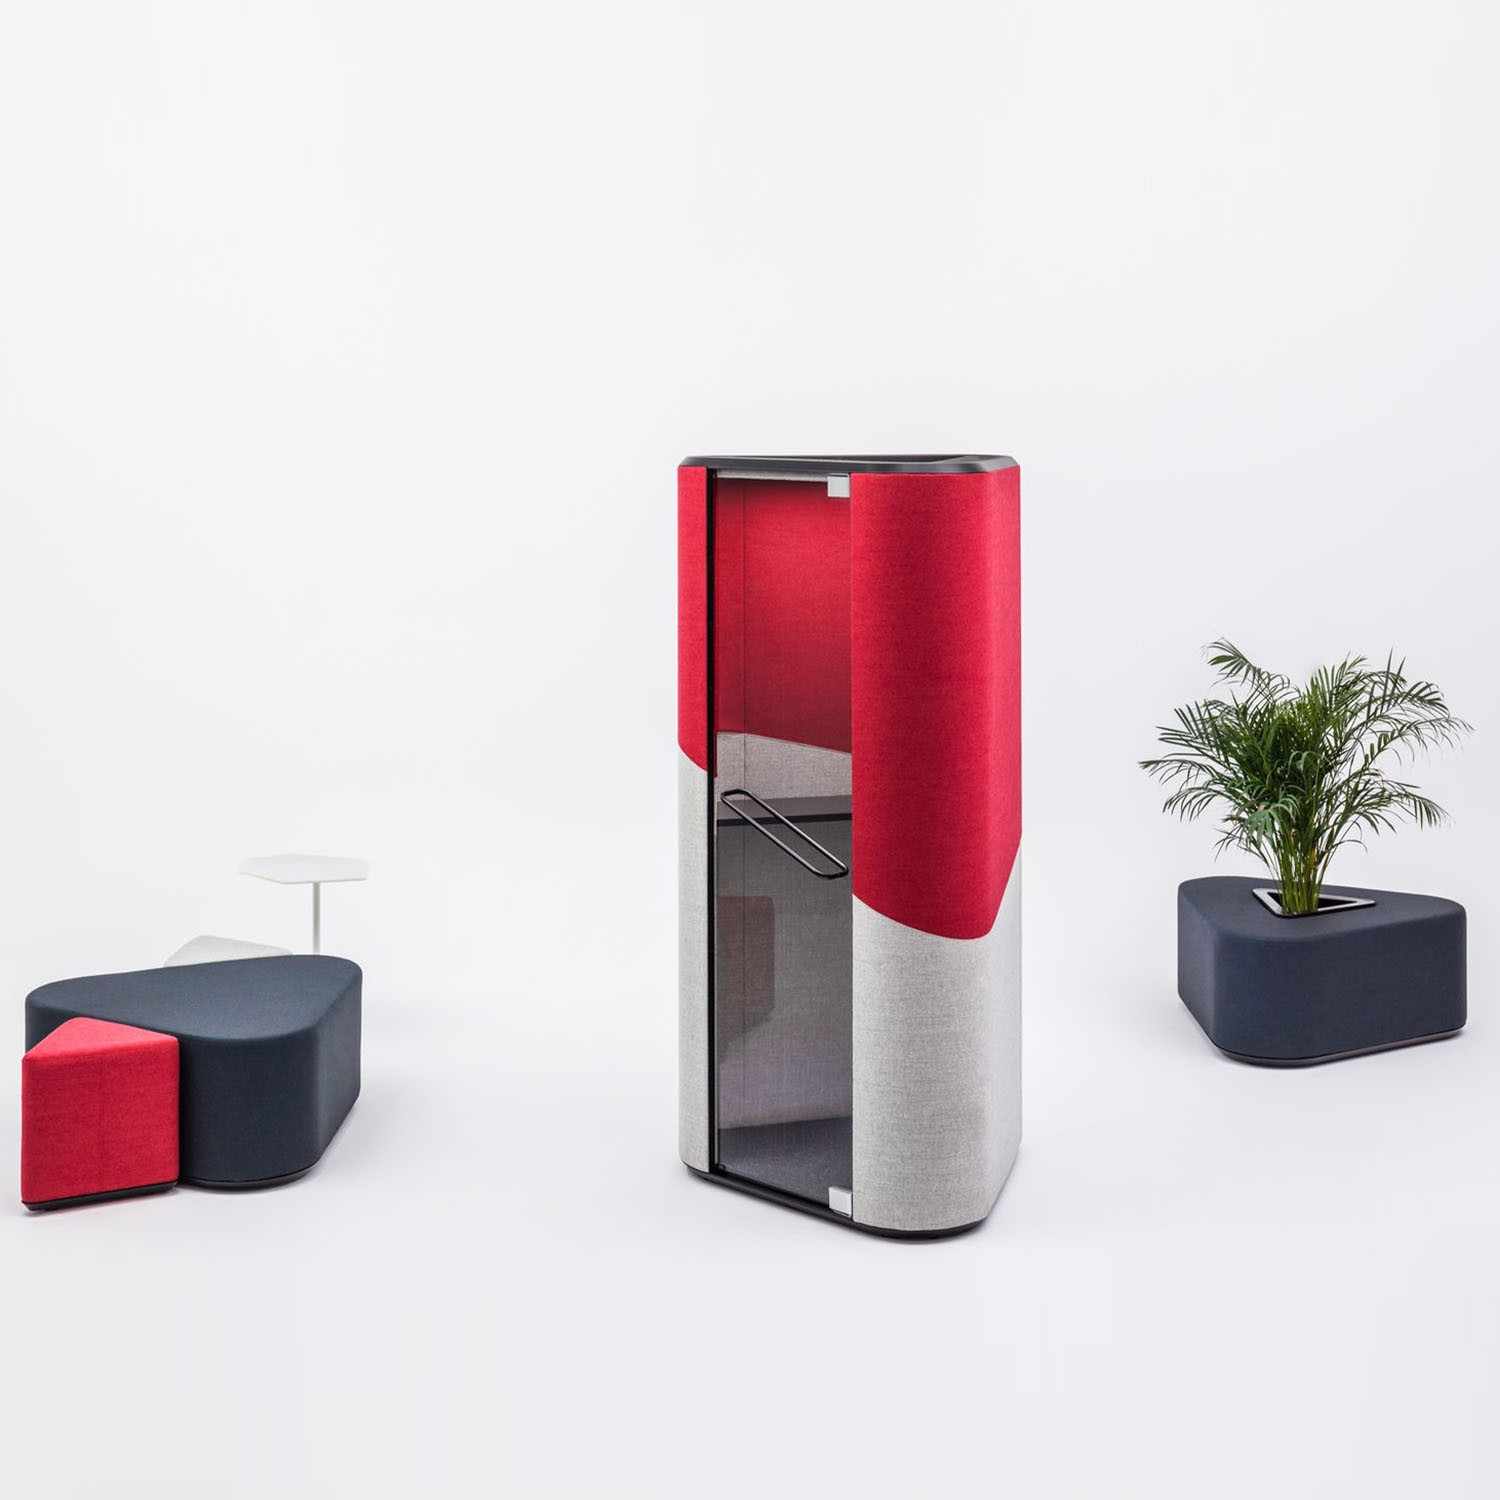 Hana Acoustic Phone Booth in Red And Grey